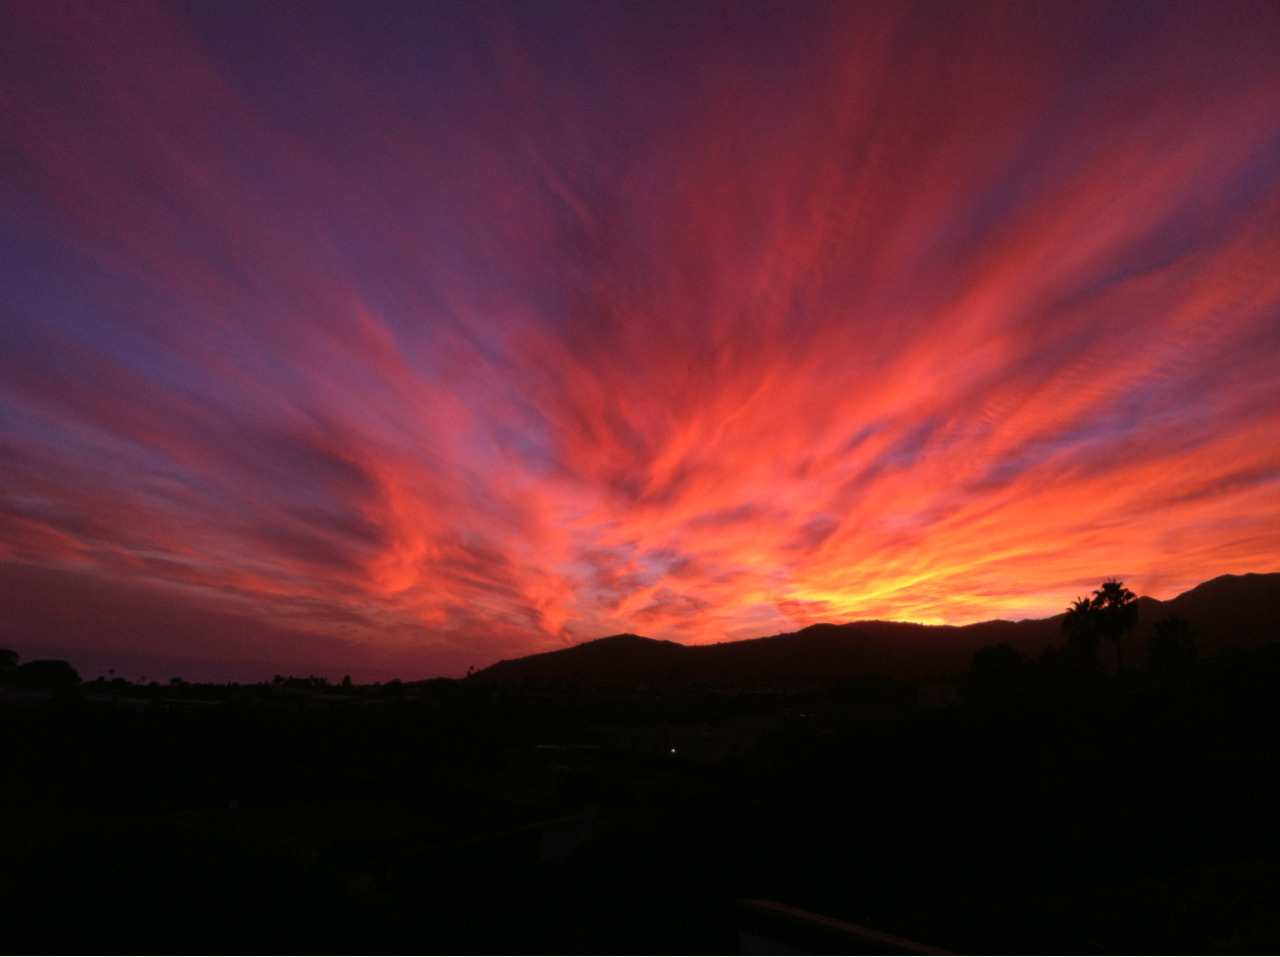 Last night's sunset in Pacific Palisades.